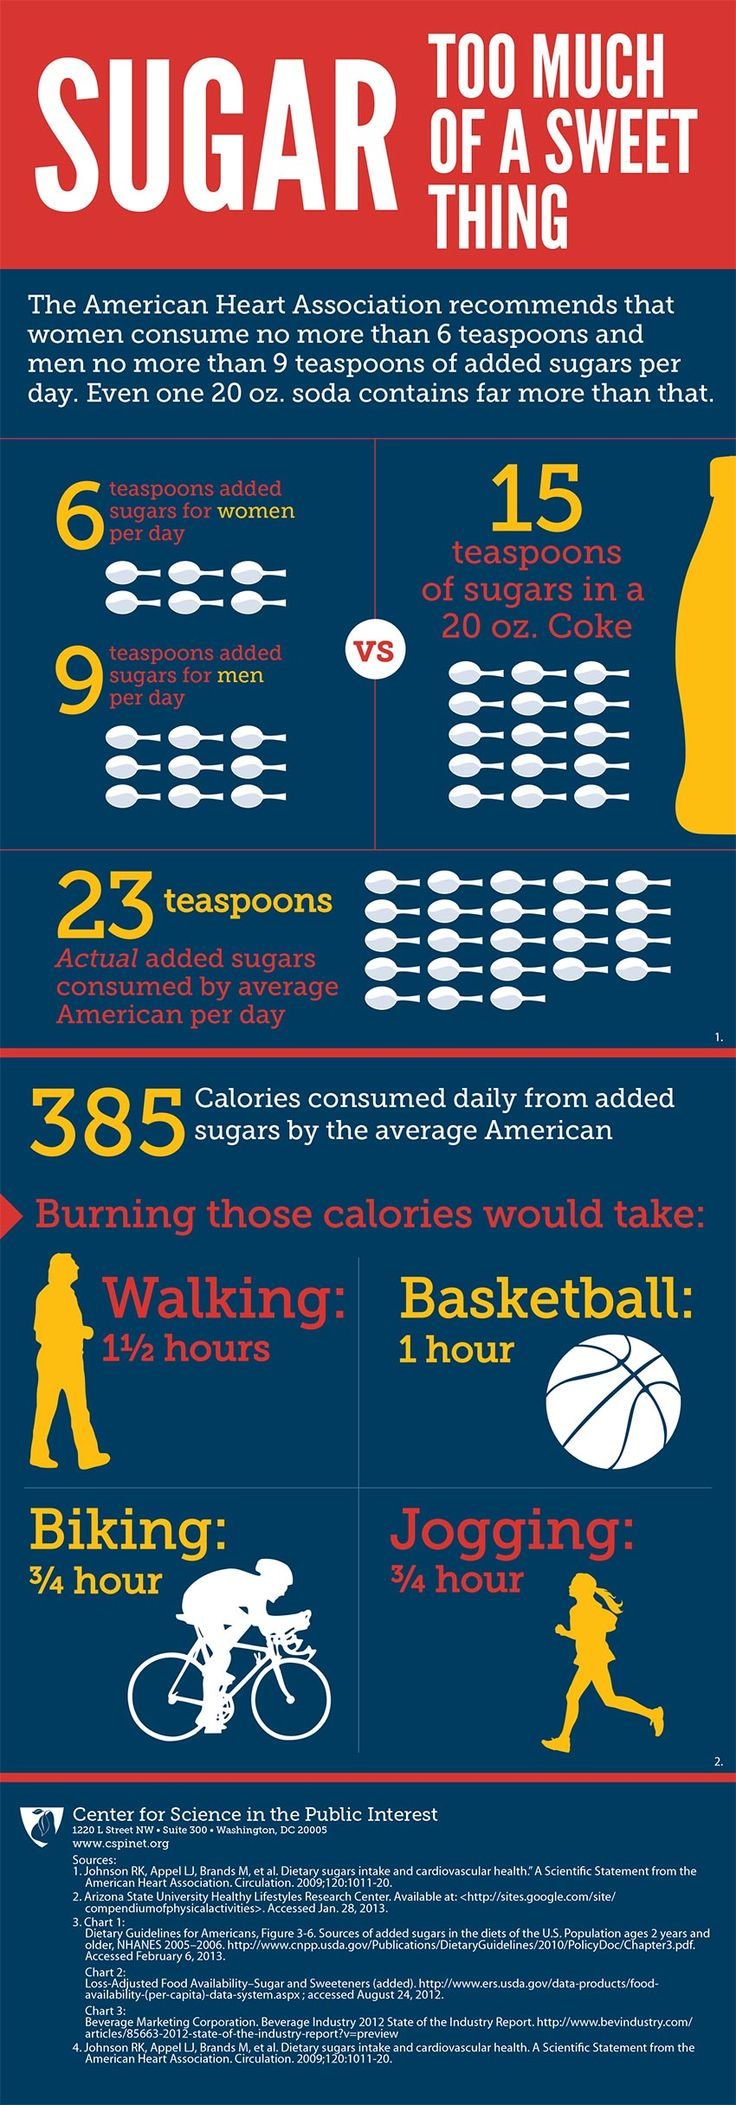 How much exercise do you need in order to burn off a day's refined sugar?